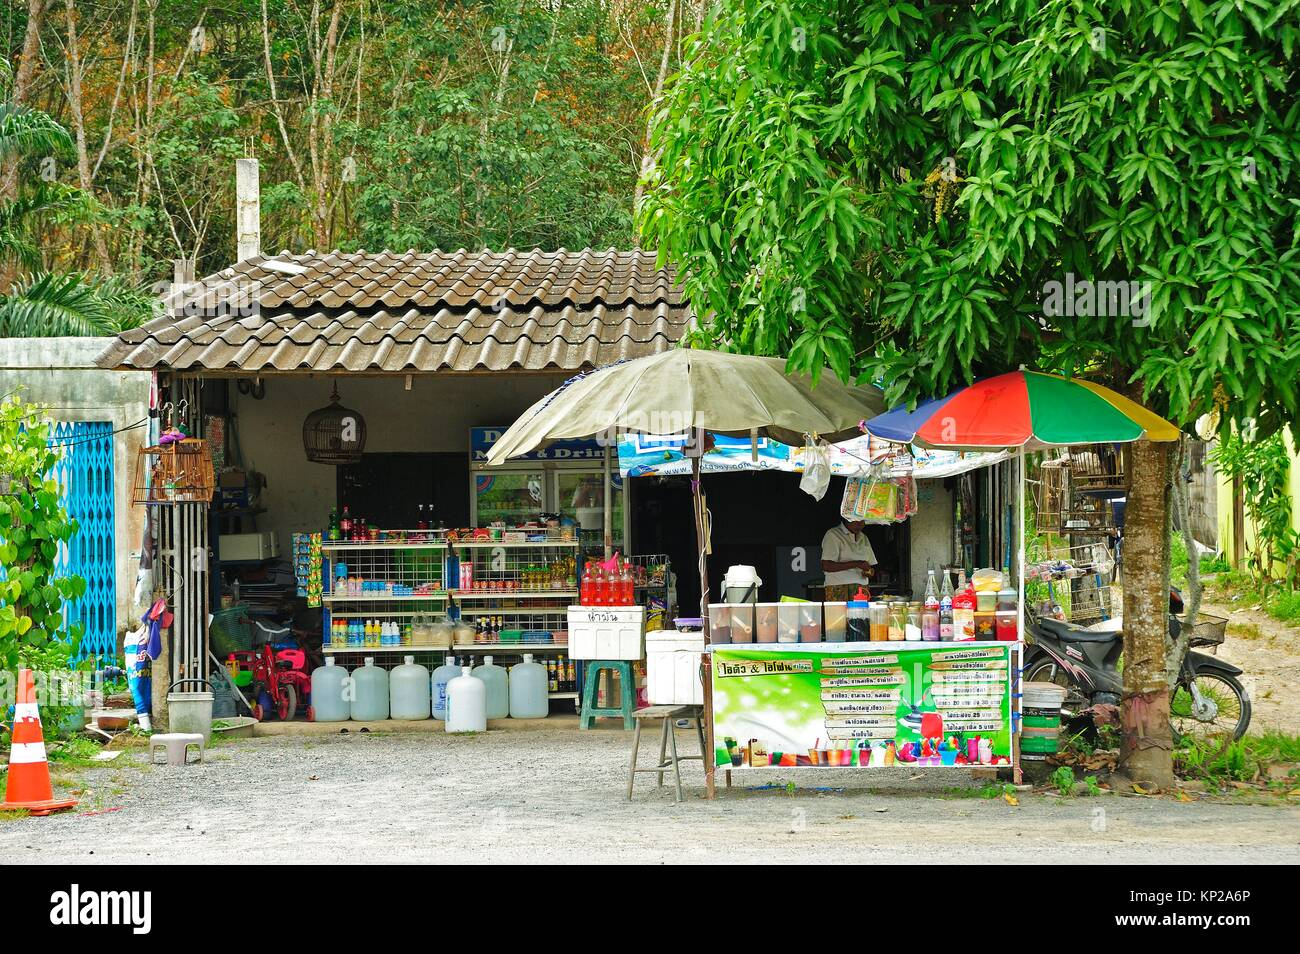 roadside food stall Find the perfect roadside fruit stall stock photo huge collection, amazing choice, 100+ million high quality, affordable rf and rm images no need to register, buy now.